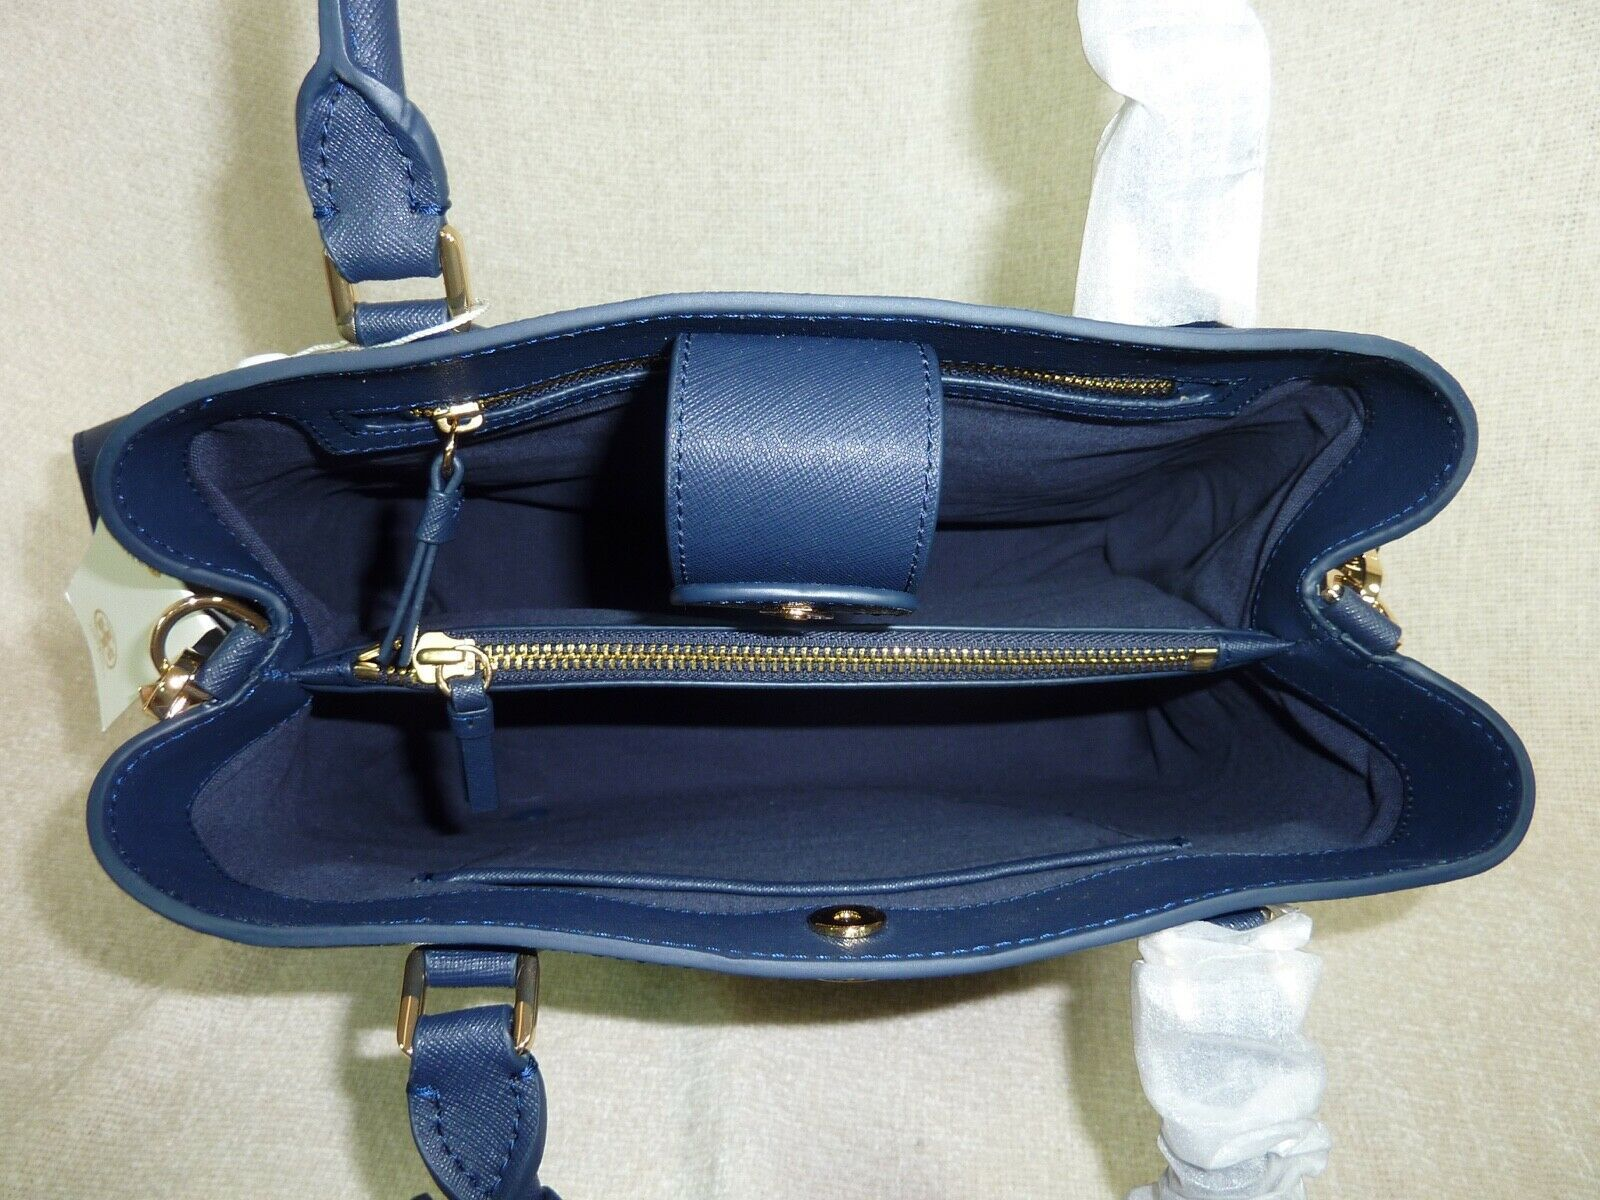 NWT Tory Burch Navy Saffiano Leather Robinson Triple-compartment Tote $458 image 8